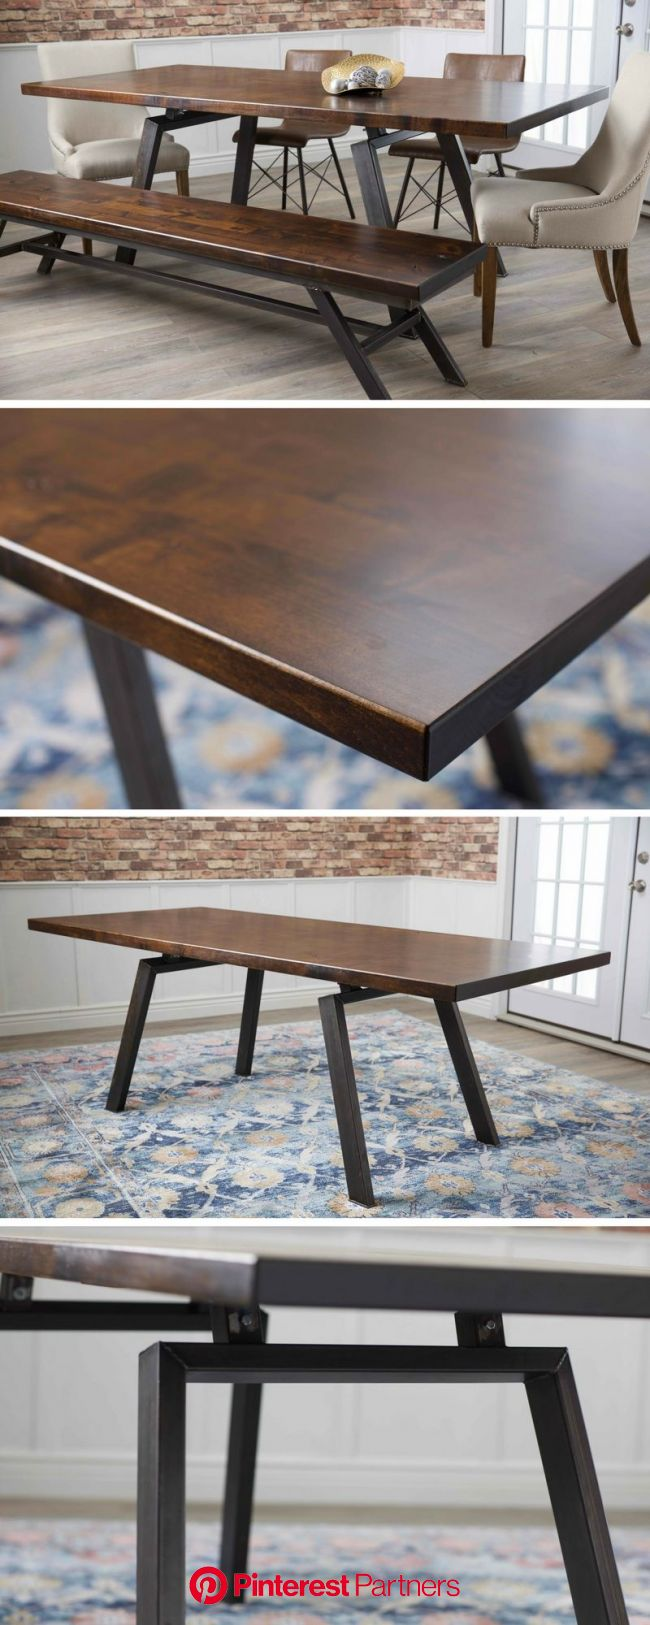 Introducing the Fulton Modern Industrial Table from James+James Furniture. A modern, industrial dining table with steel legs and a random board width,